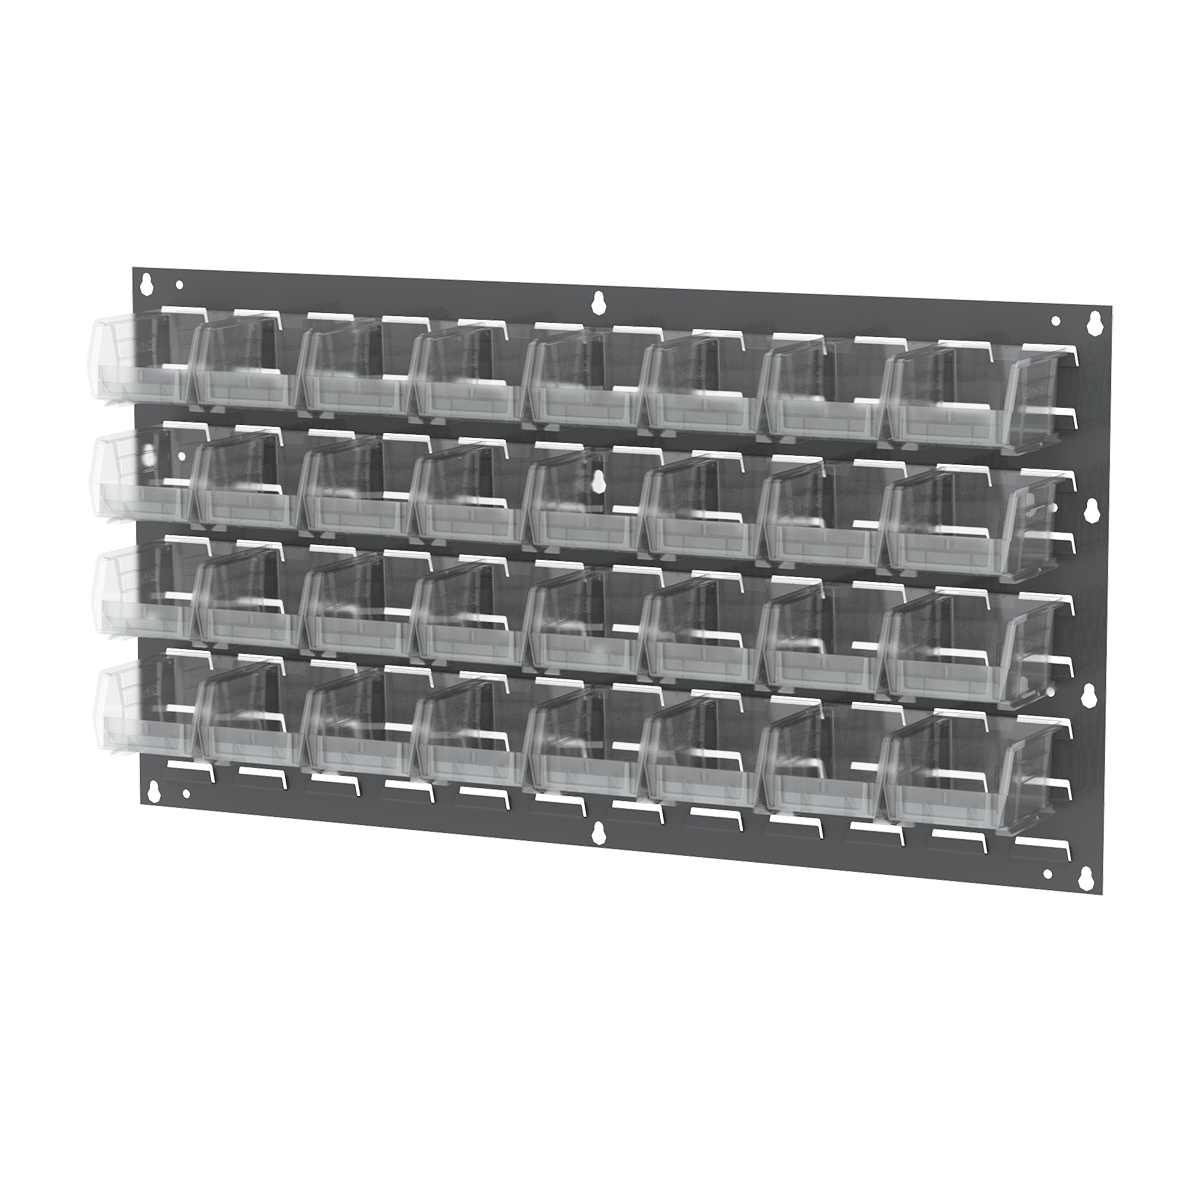 Item DISCONTINUED by Manufacturer.  Louvered Wall Panel, 35-3/4 x 19, w/ 32 AkroBins 30210SCLAR, Gray/Clear (30636210SC).  This item sold in carton quantities of 1.